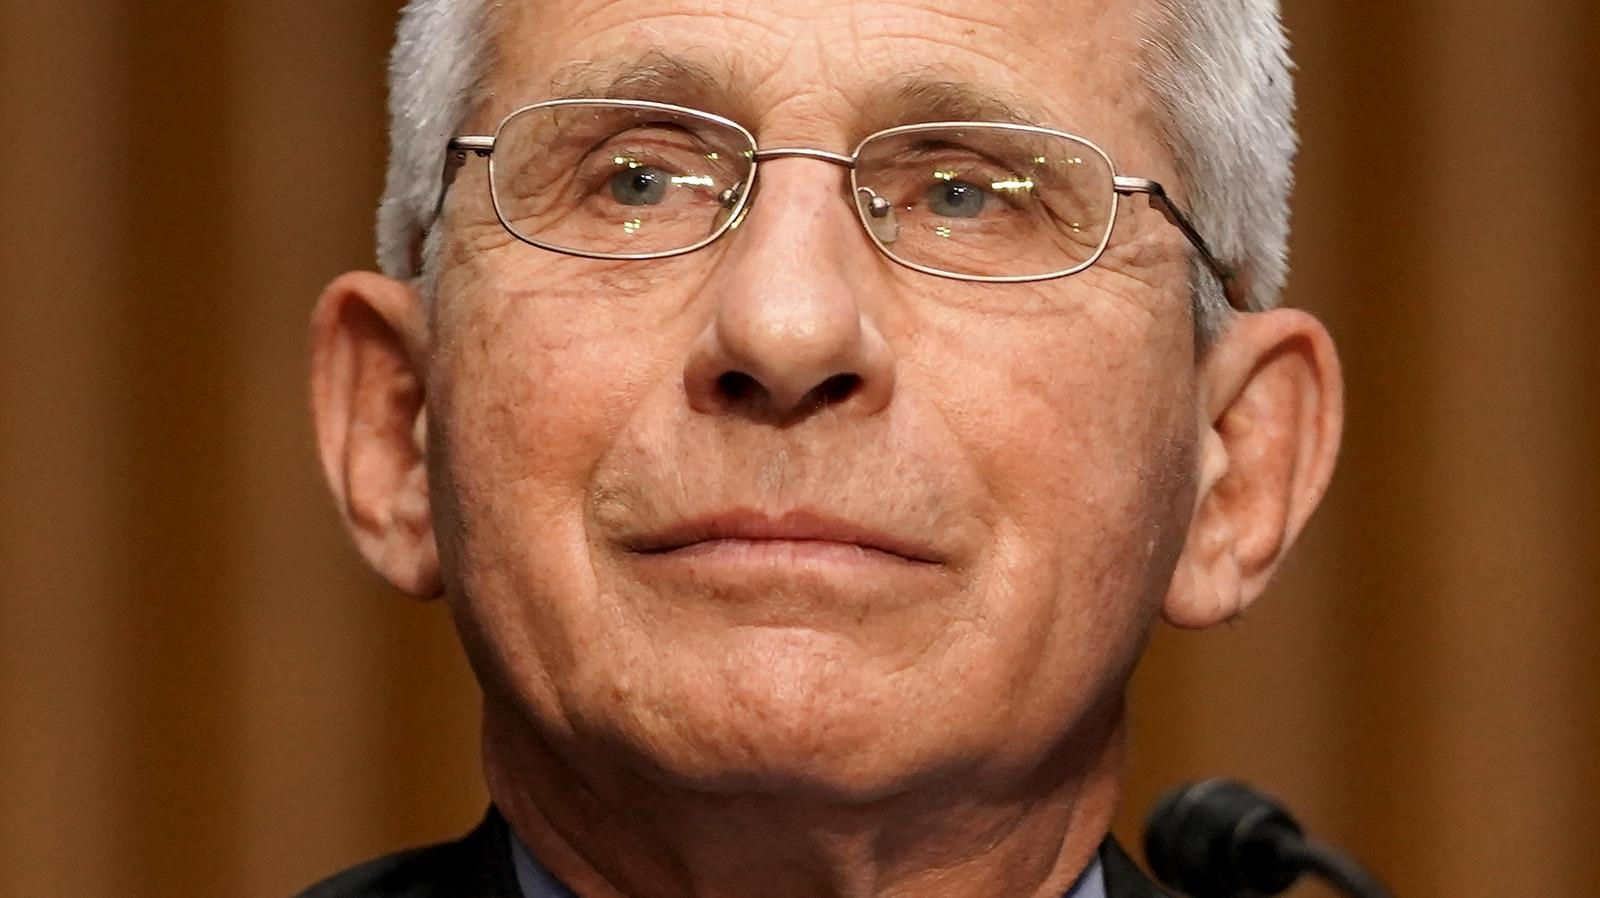 The Truth About Dr. Fauci's Relationship With His Wife Dr. Christine Grady